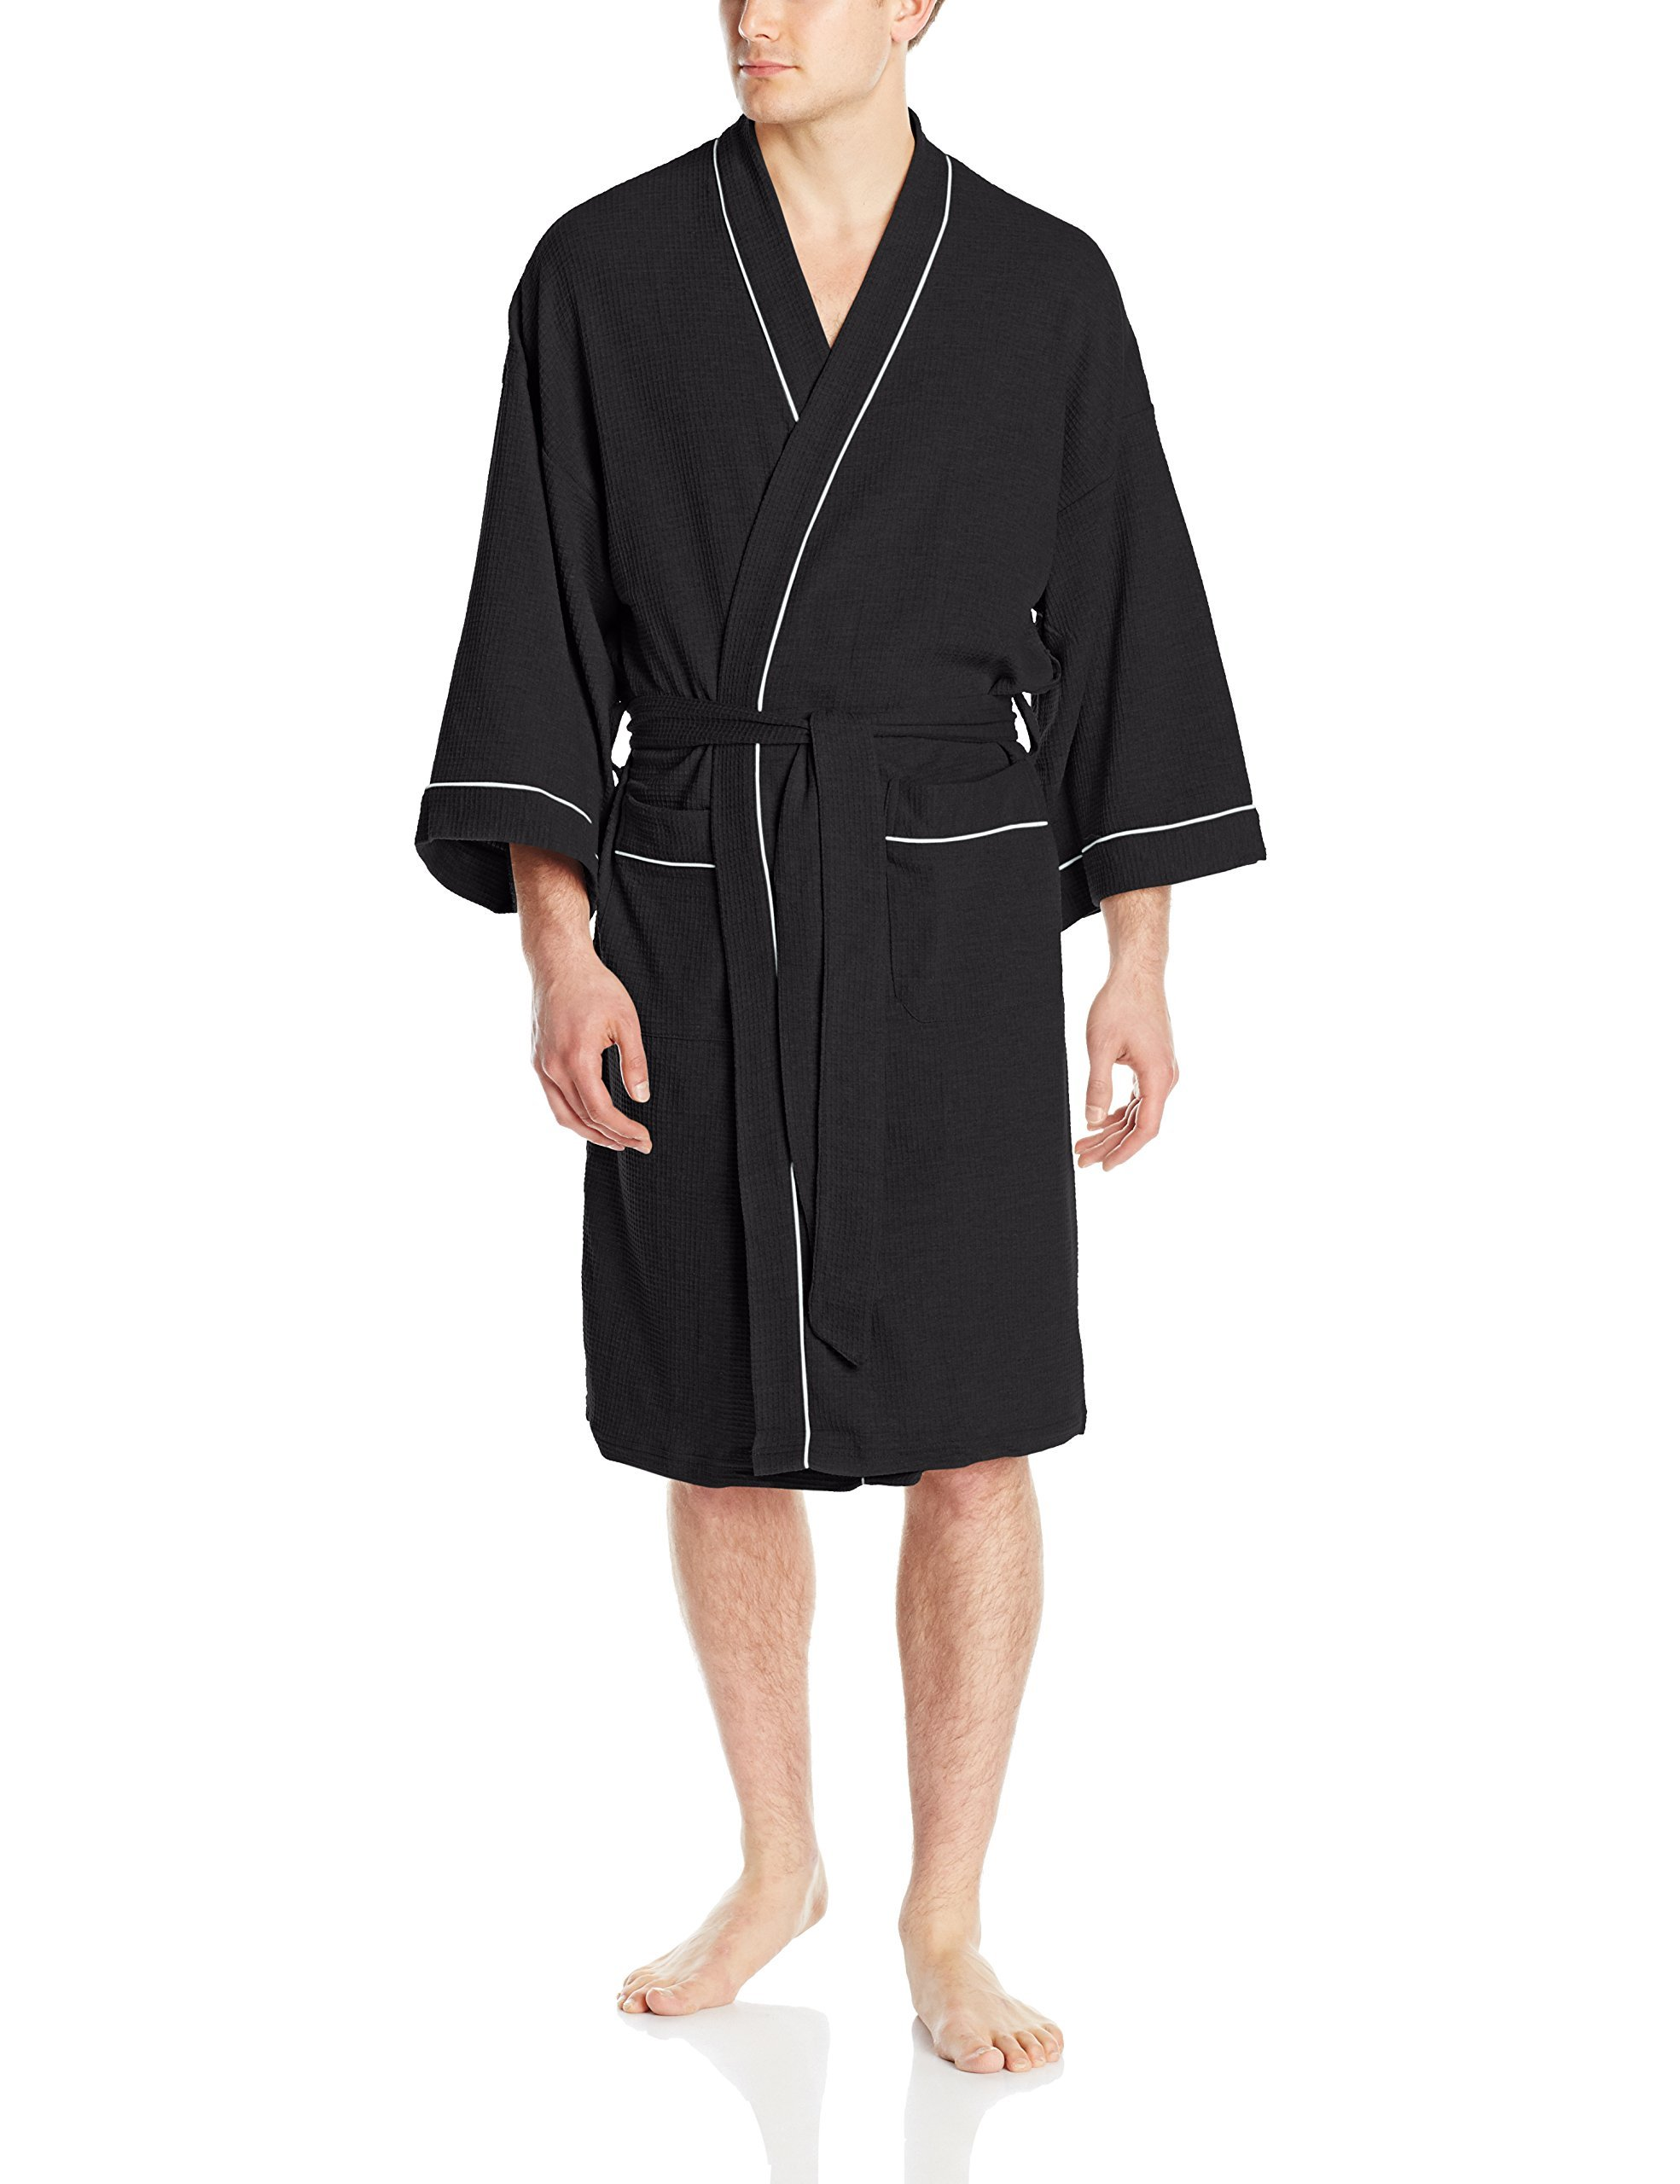 WULFUL Men's Cotton Lightweight Bathrobe Waffle-Knit Kimono Robe Soft Spa Bathrobe Nightgown Sleepwear (Black, M)